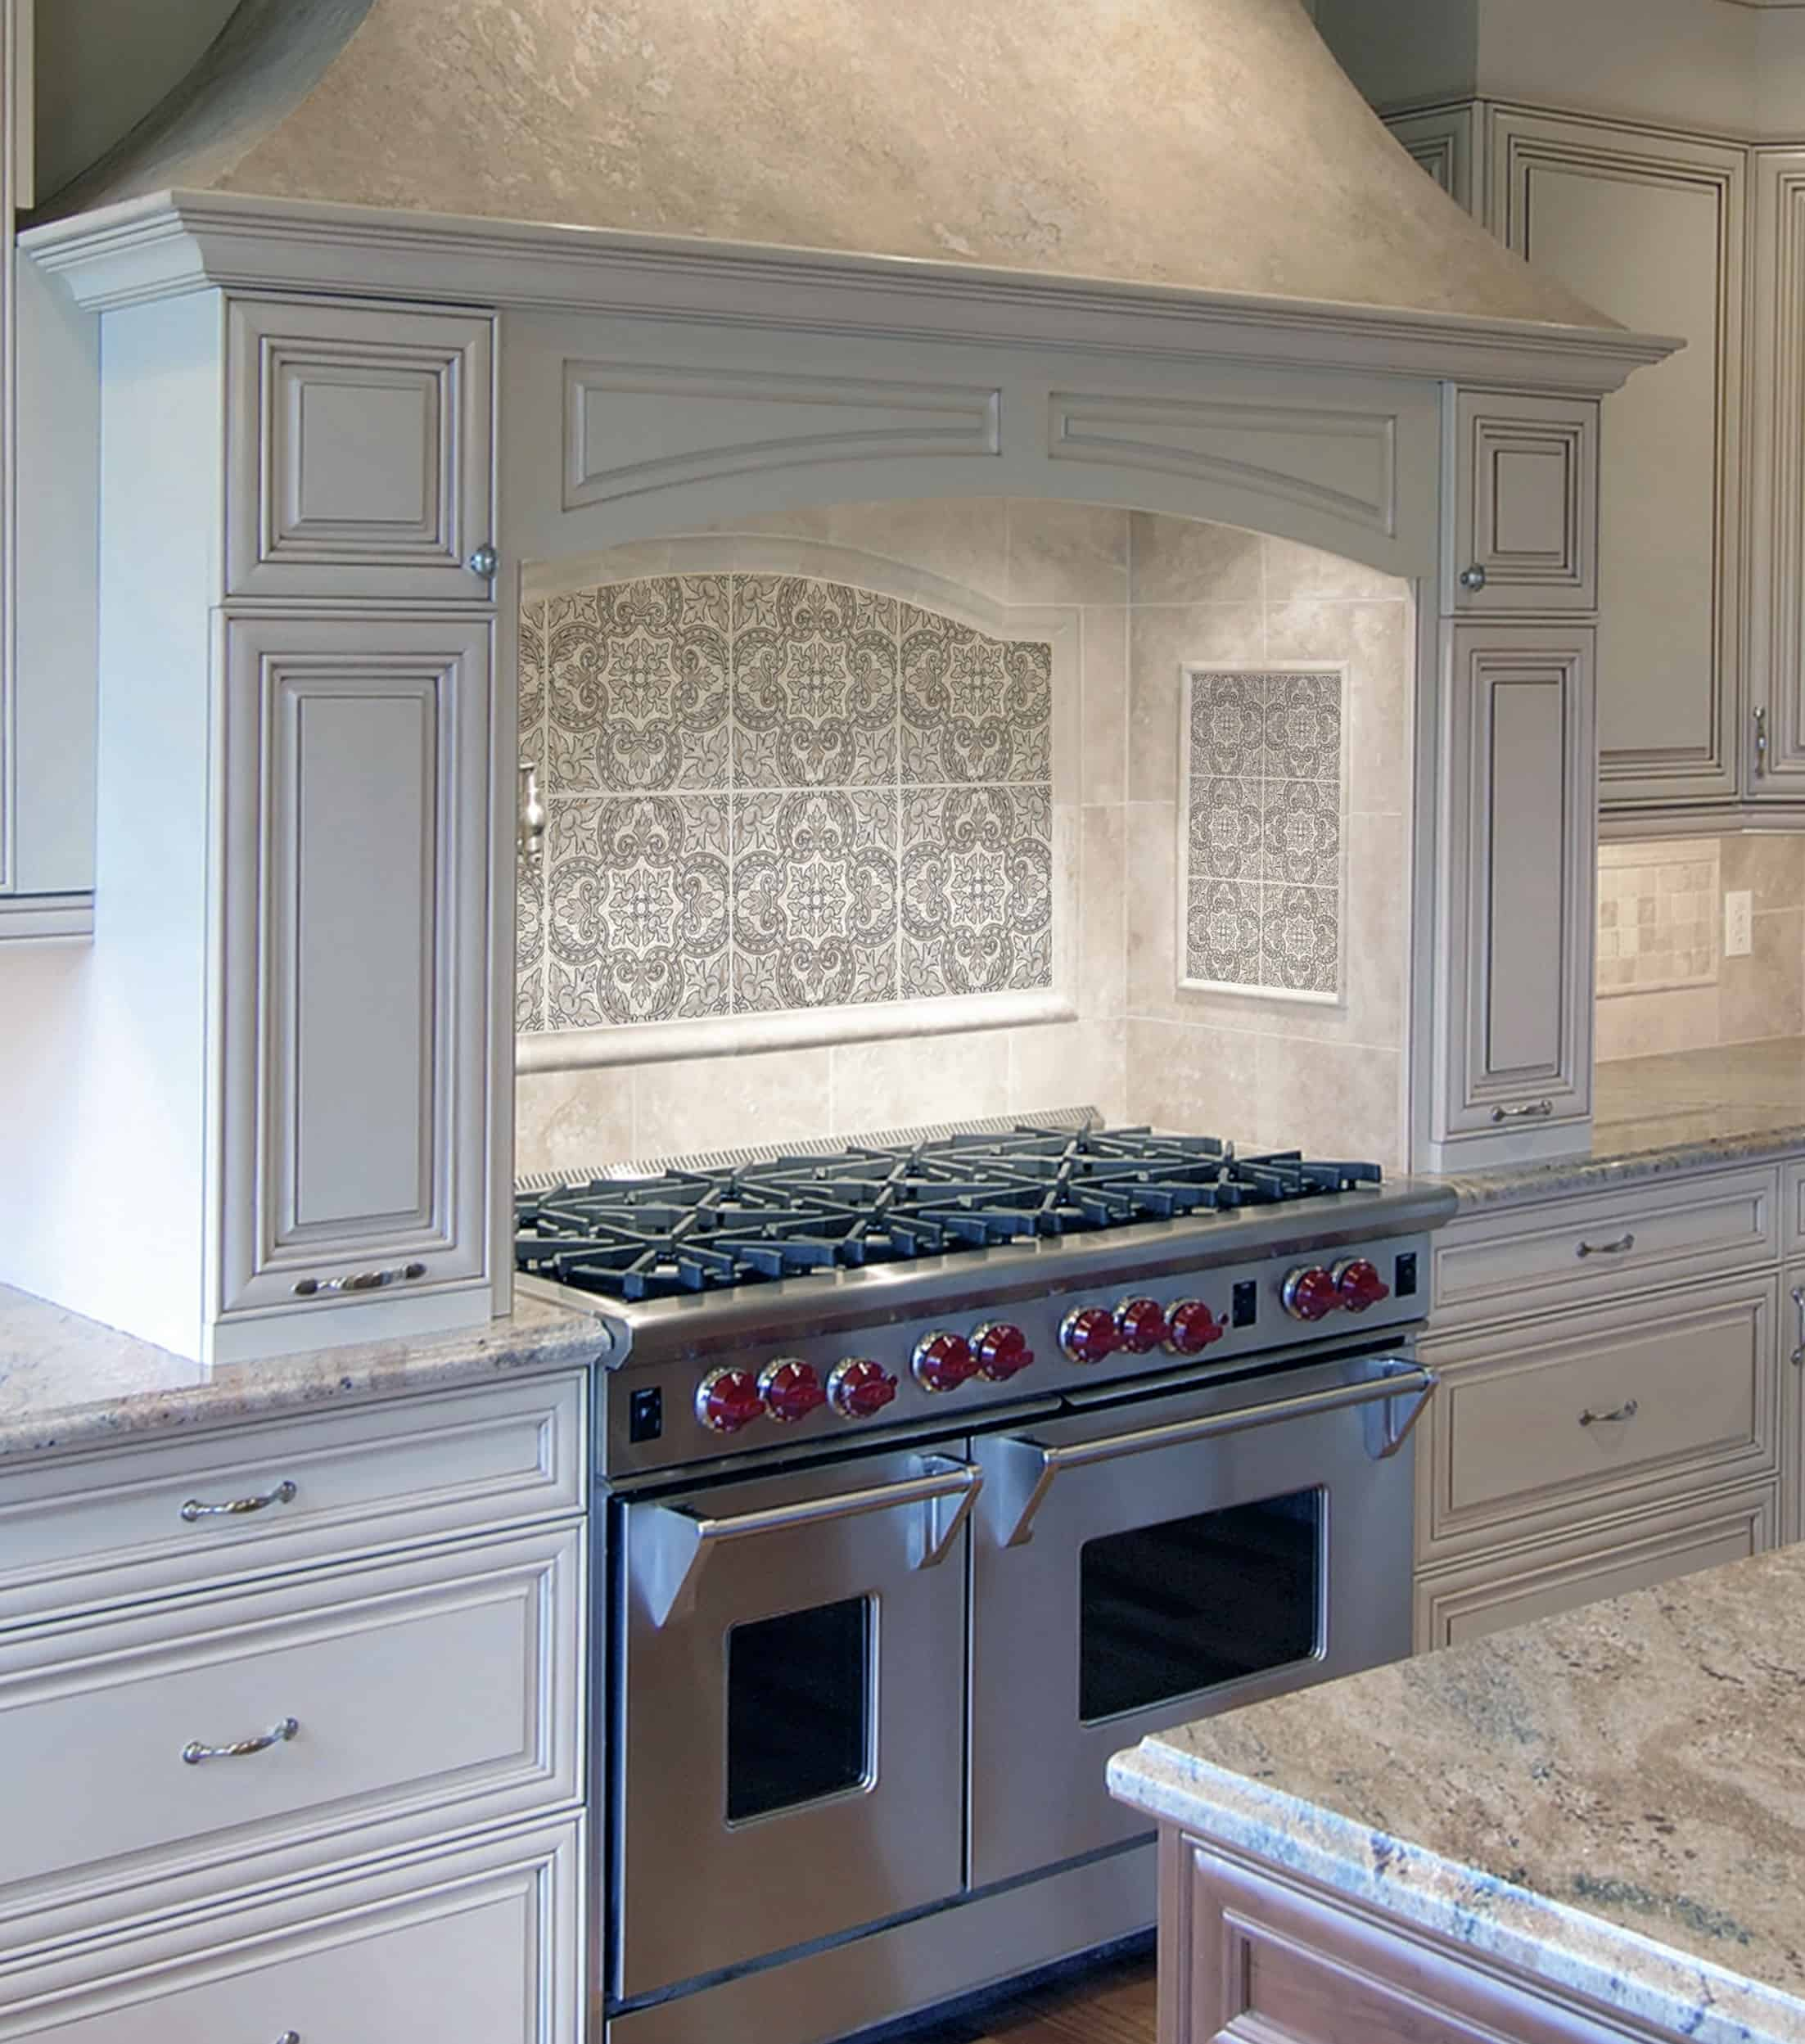 kitchens with stone backsplash 11 kitchen backsplash ideas you should consider 20228